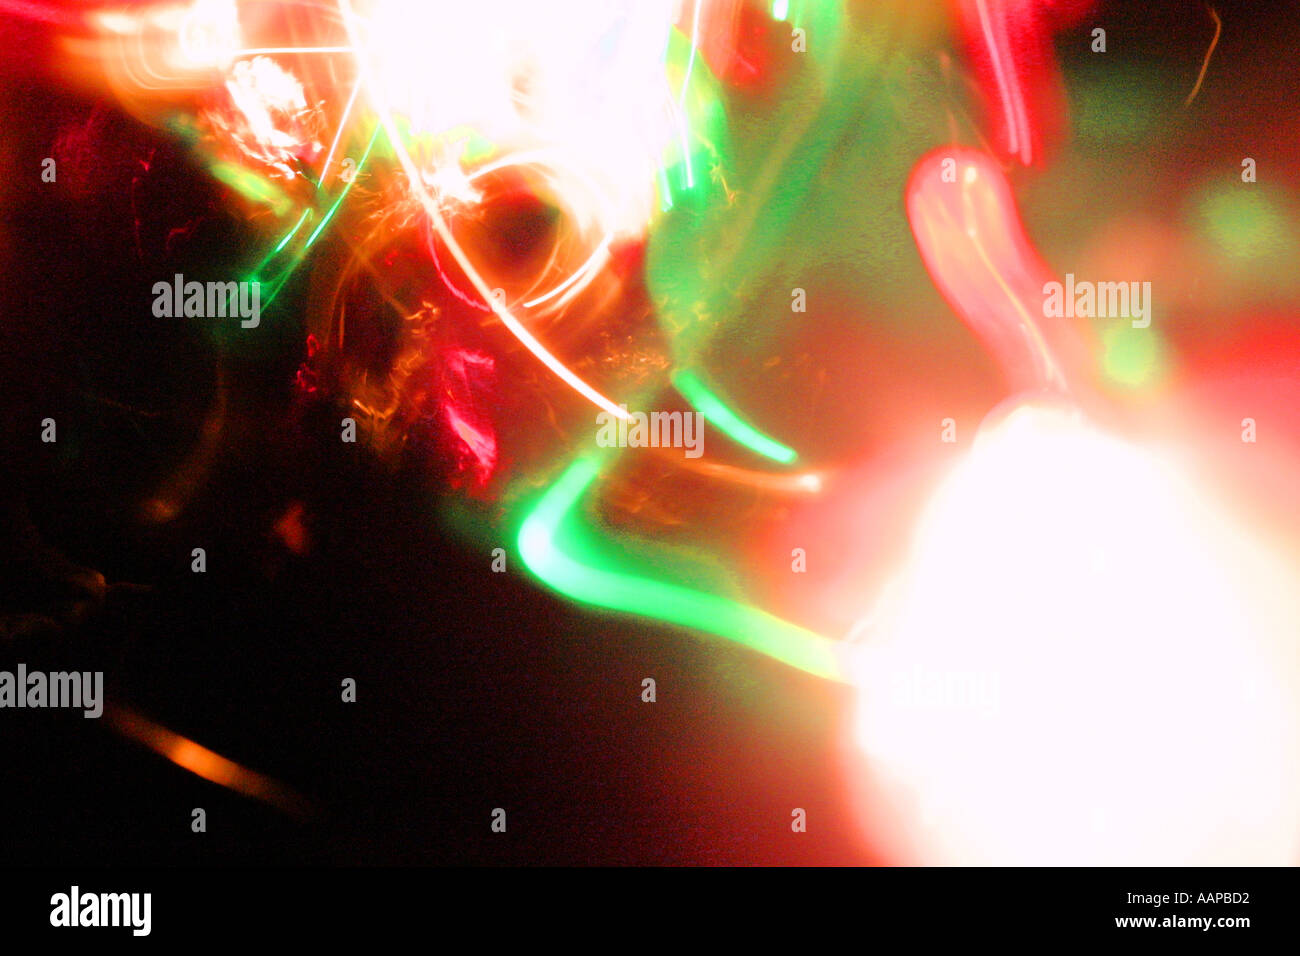 Abstract light reminiscent of The Big Bang - Stock Image